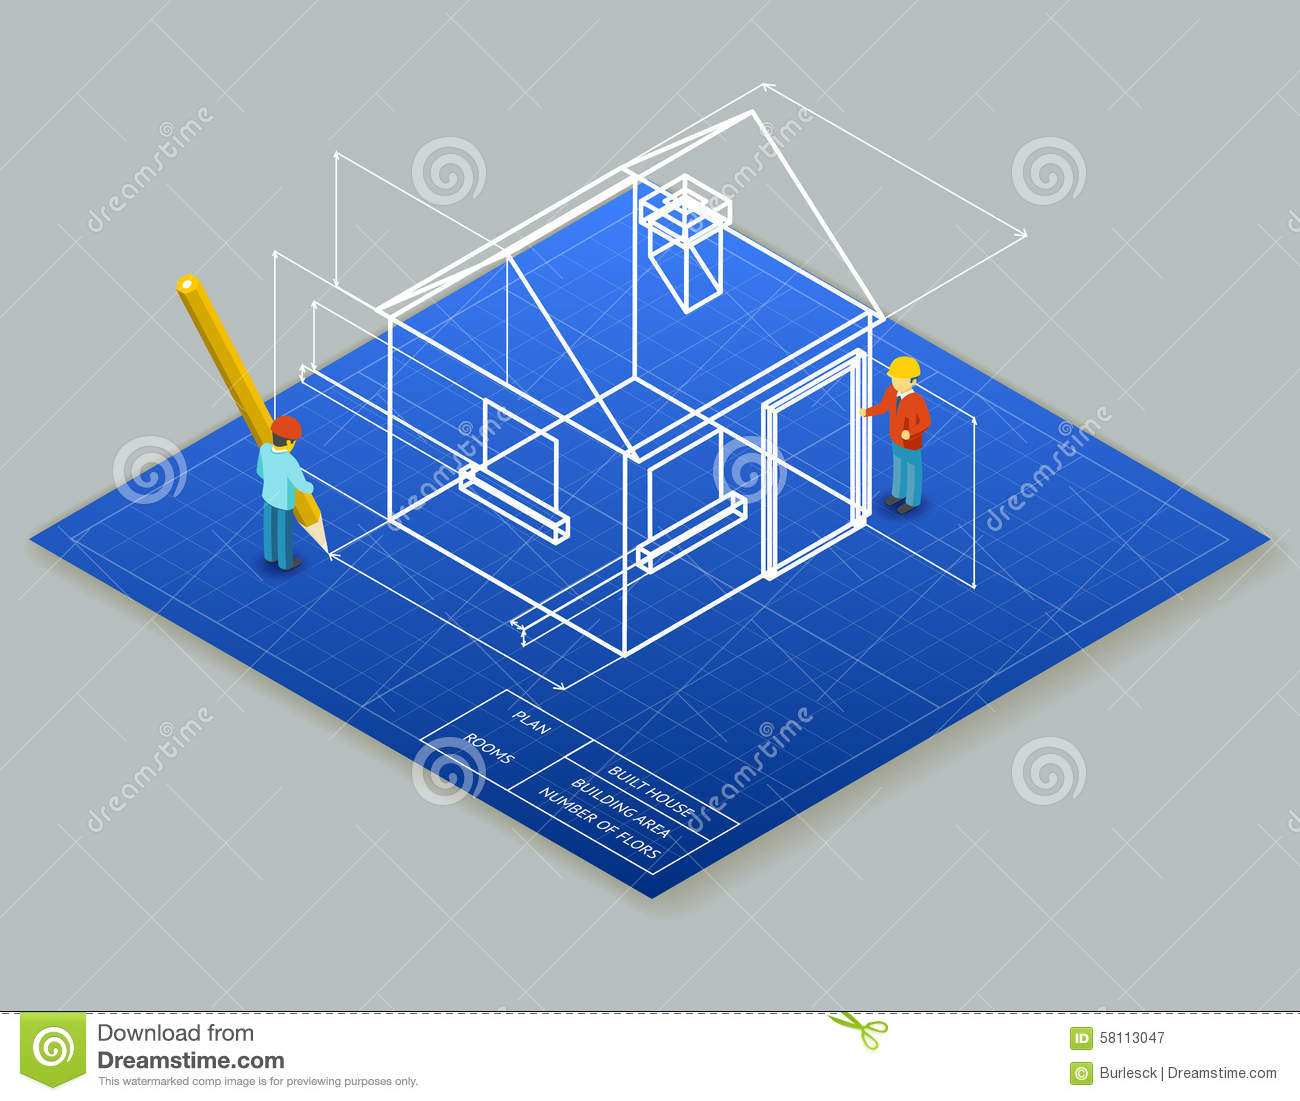 Architectural design blueprint drawing 3d stock vector for Architecture design blueprint